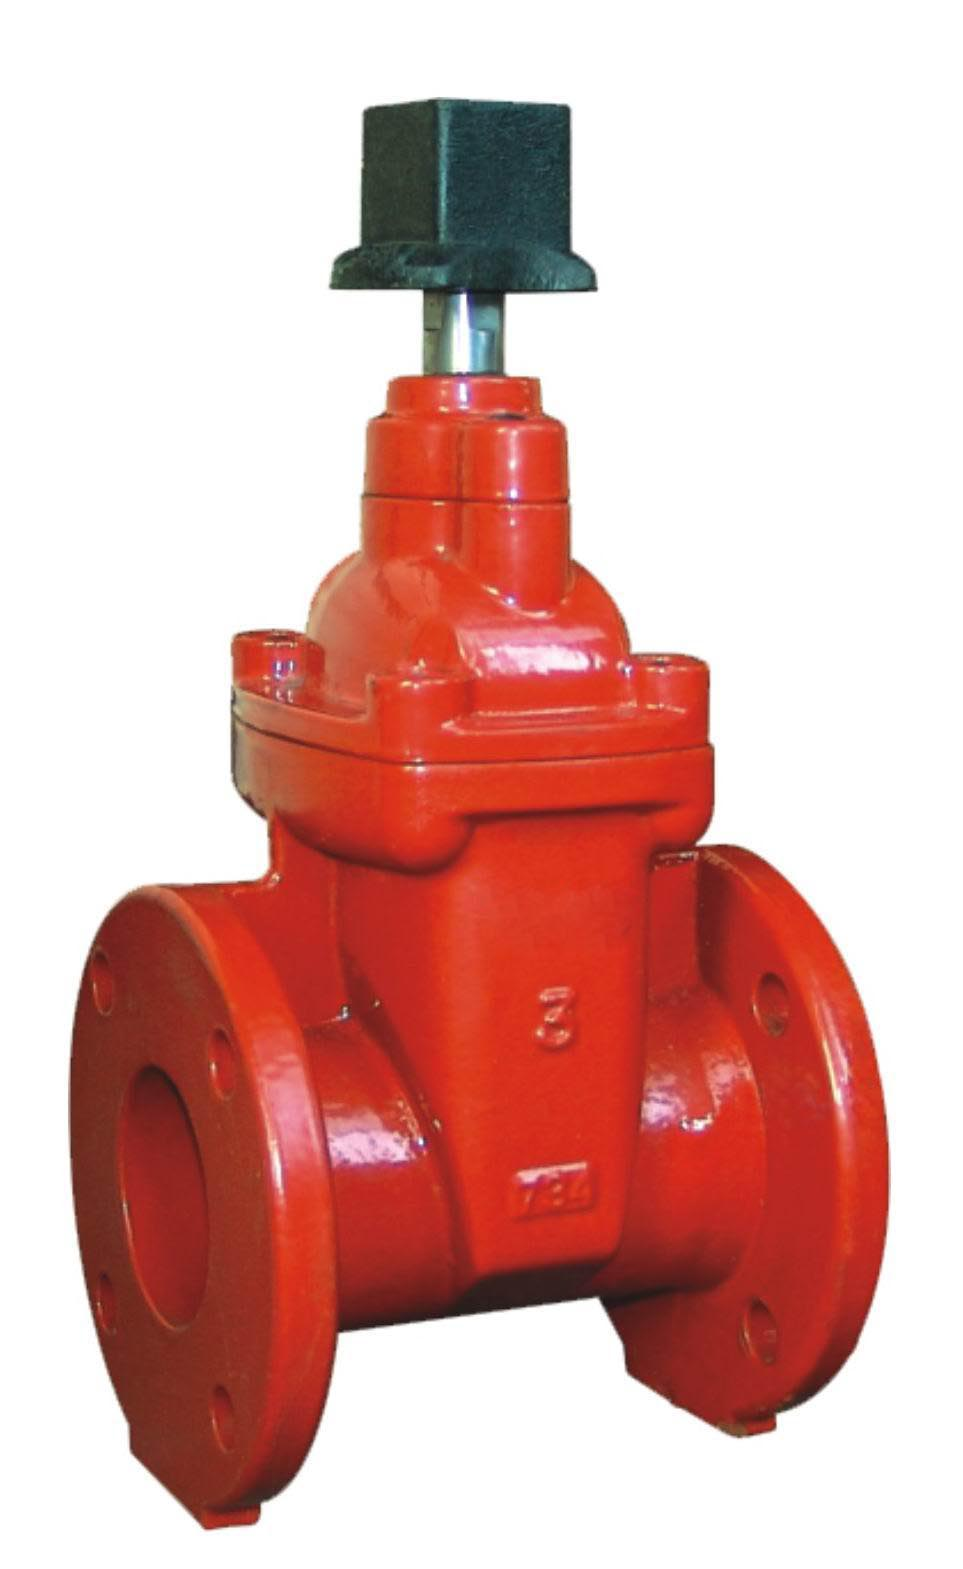 Factory supplied Brass Butt Weld Knife Gate Valve -